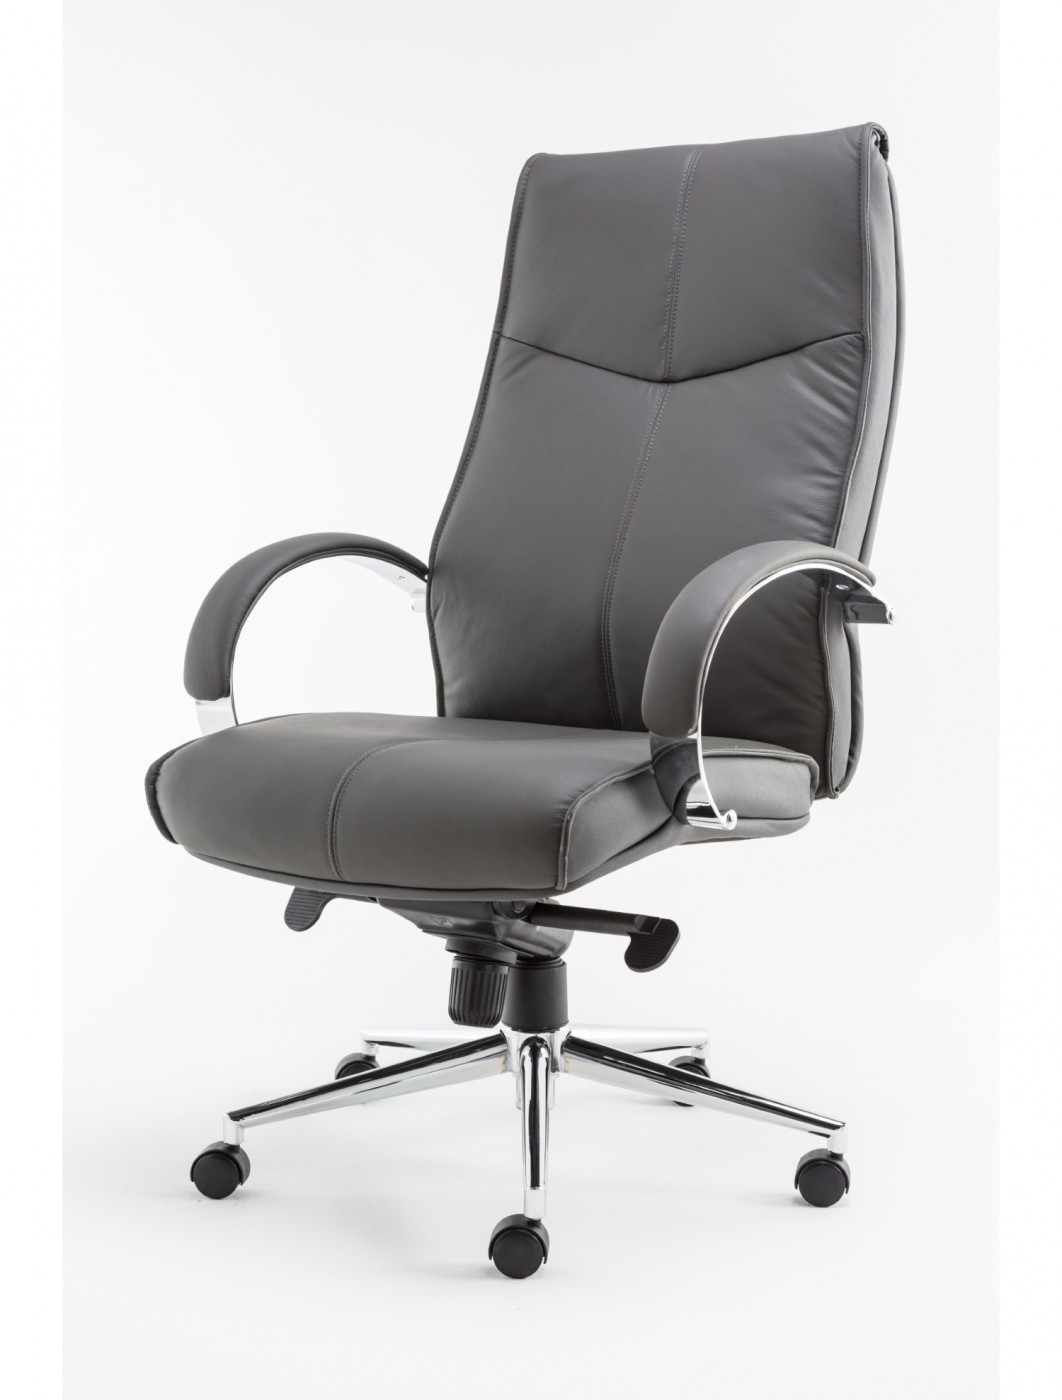 Alphason Verona Leather Executive Office Chair AOC1019GRY   Enlarged View